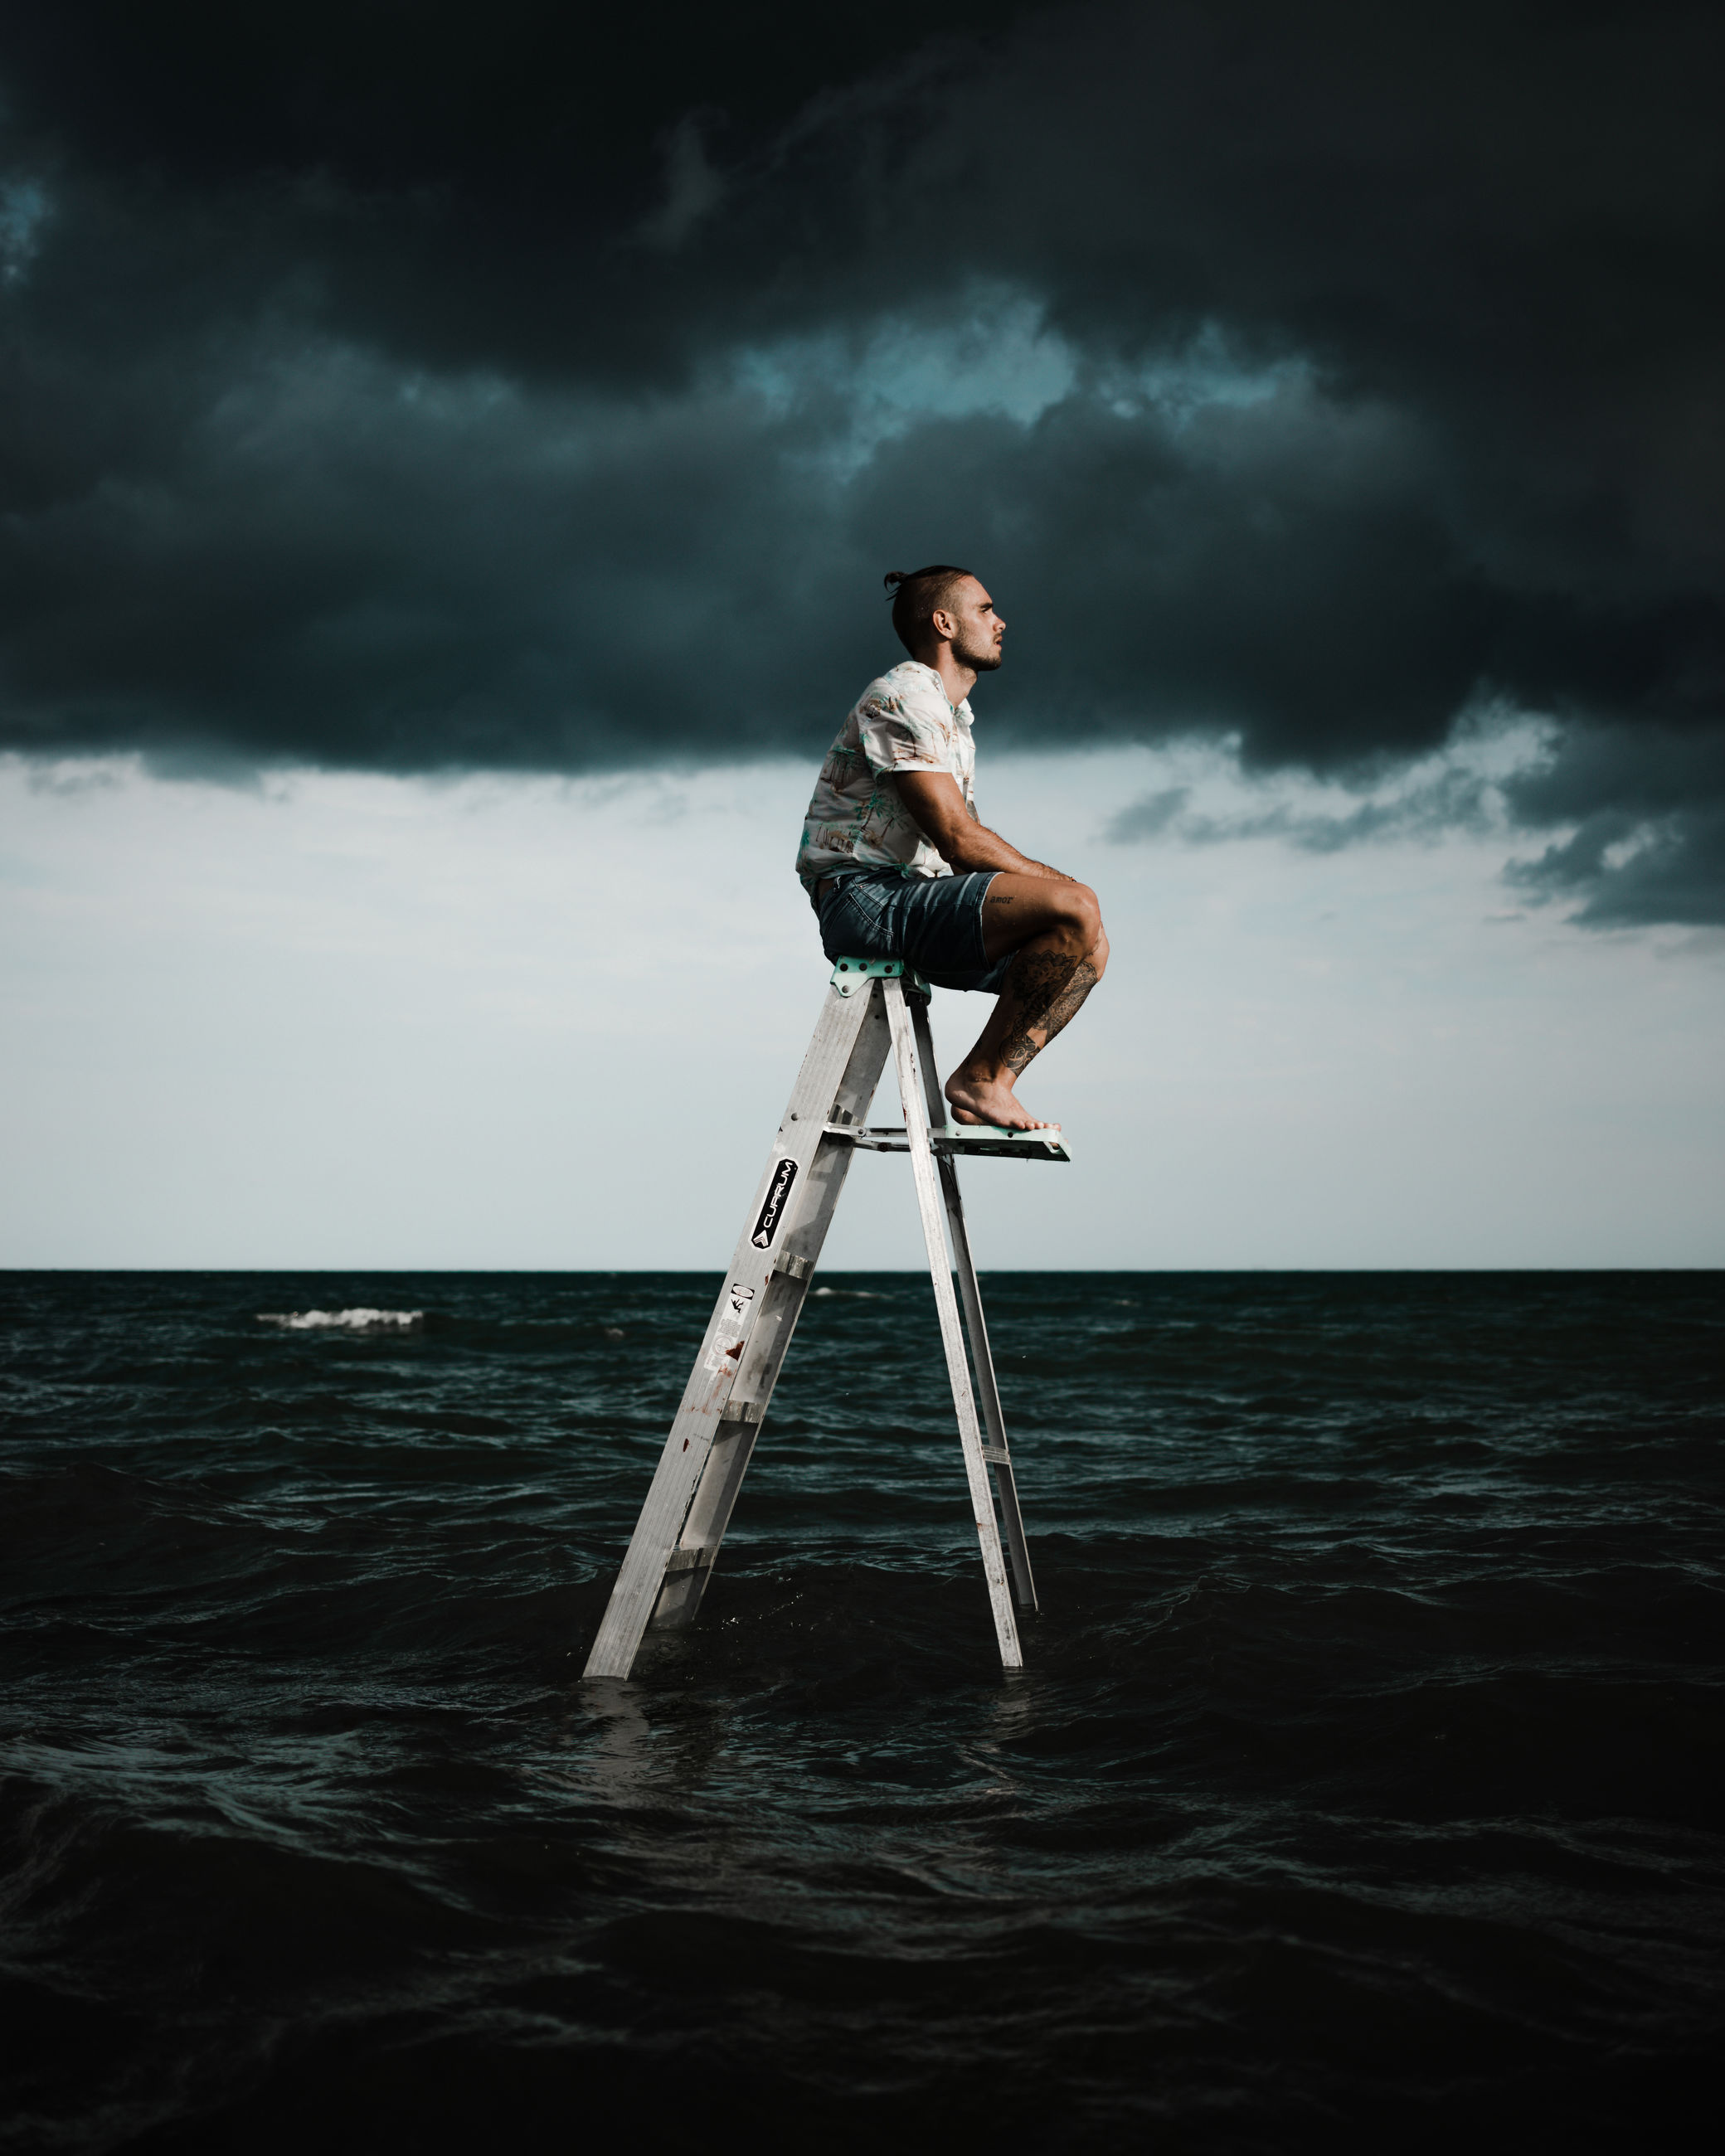 cloud, sky, water, one person, sea, adult, full length, nature, men, horizon, ocean, storm, wave, horizon over water, storm cloud, darkness, overcast, beauty in nature, standing, land, young adult, side view, person, outdoors, dramatic sky, wind, scenics - nature, sports, motion, cloudscape, occupation, dusk, copy space